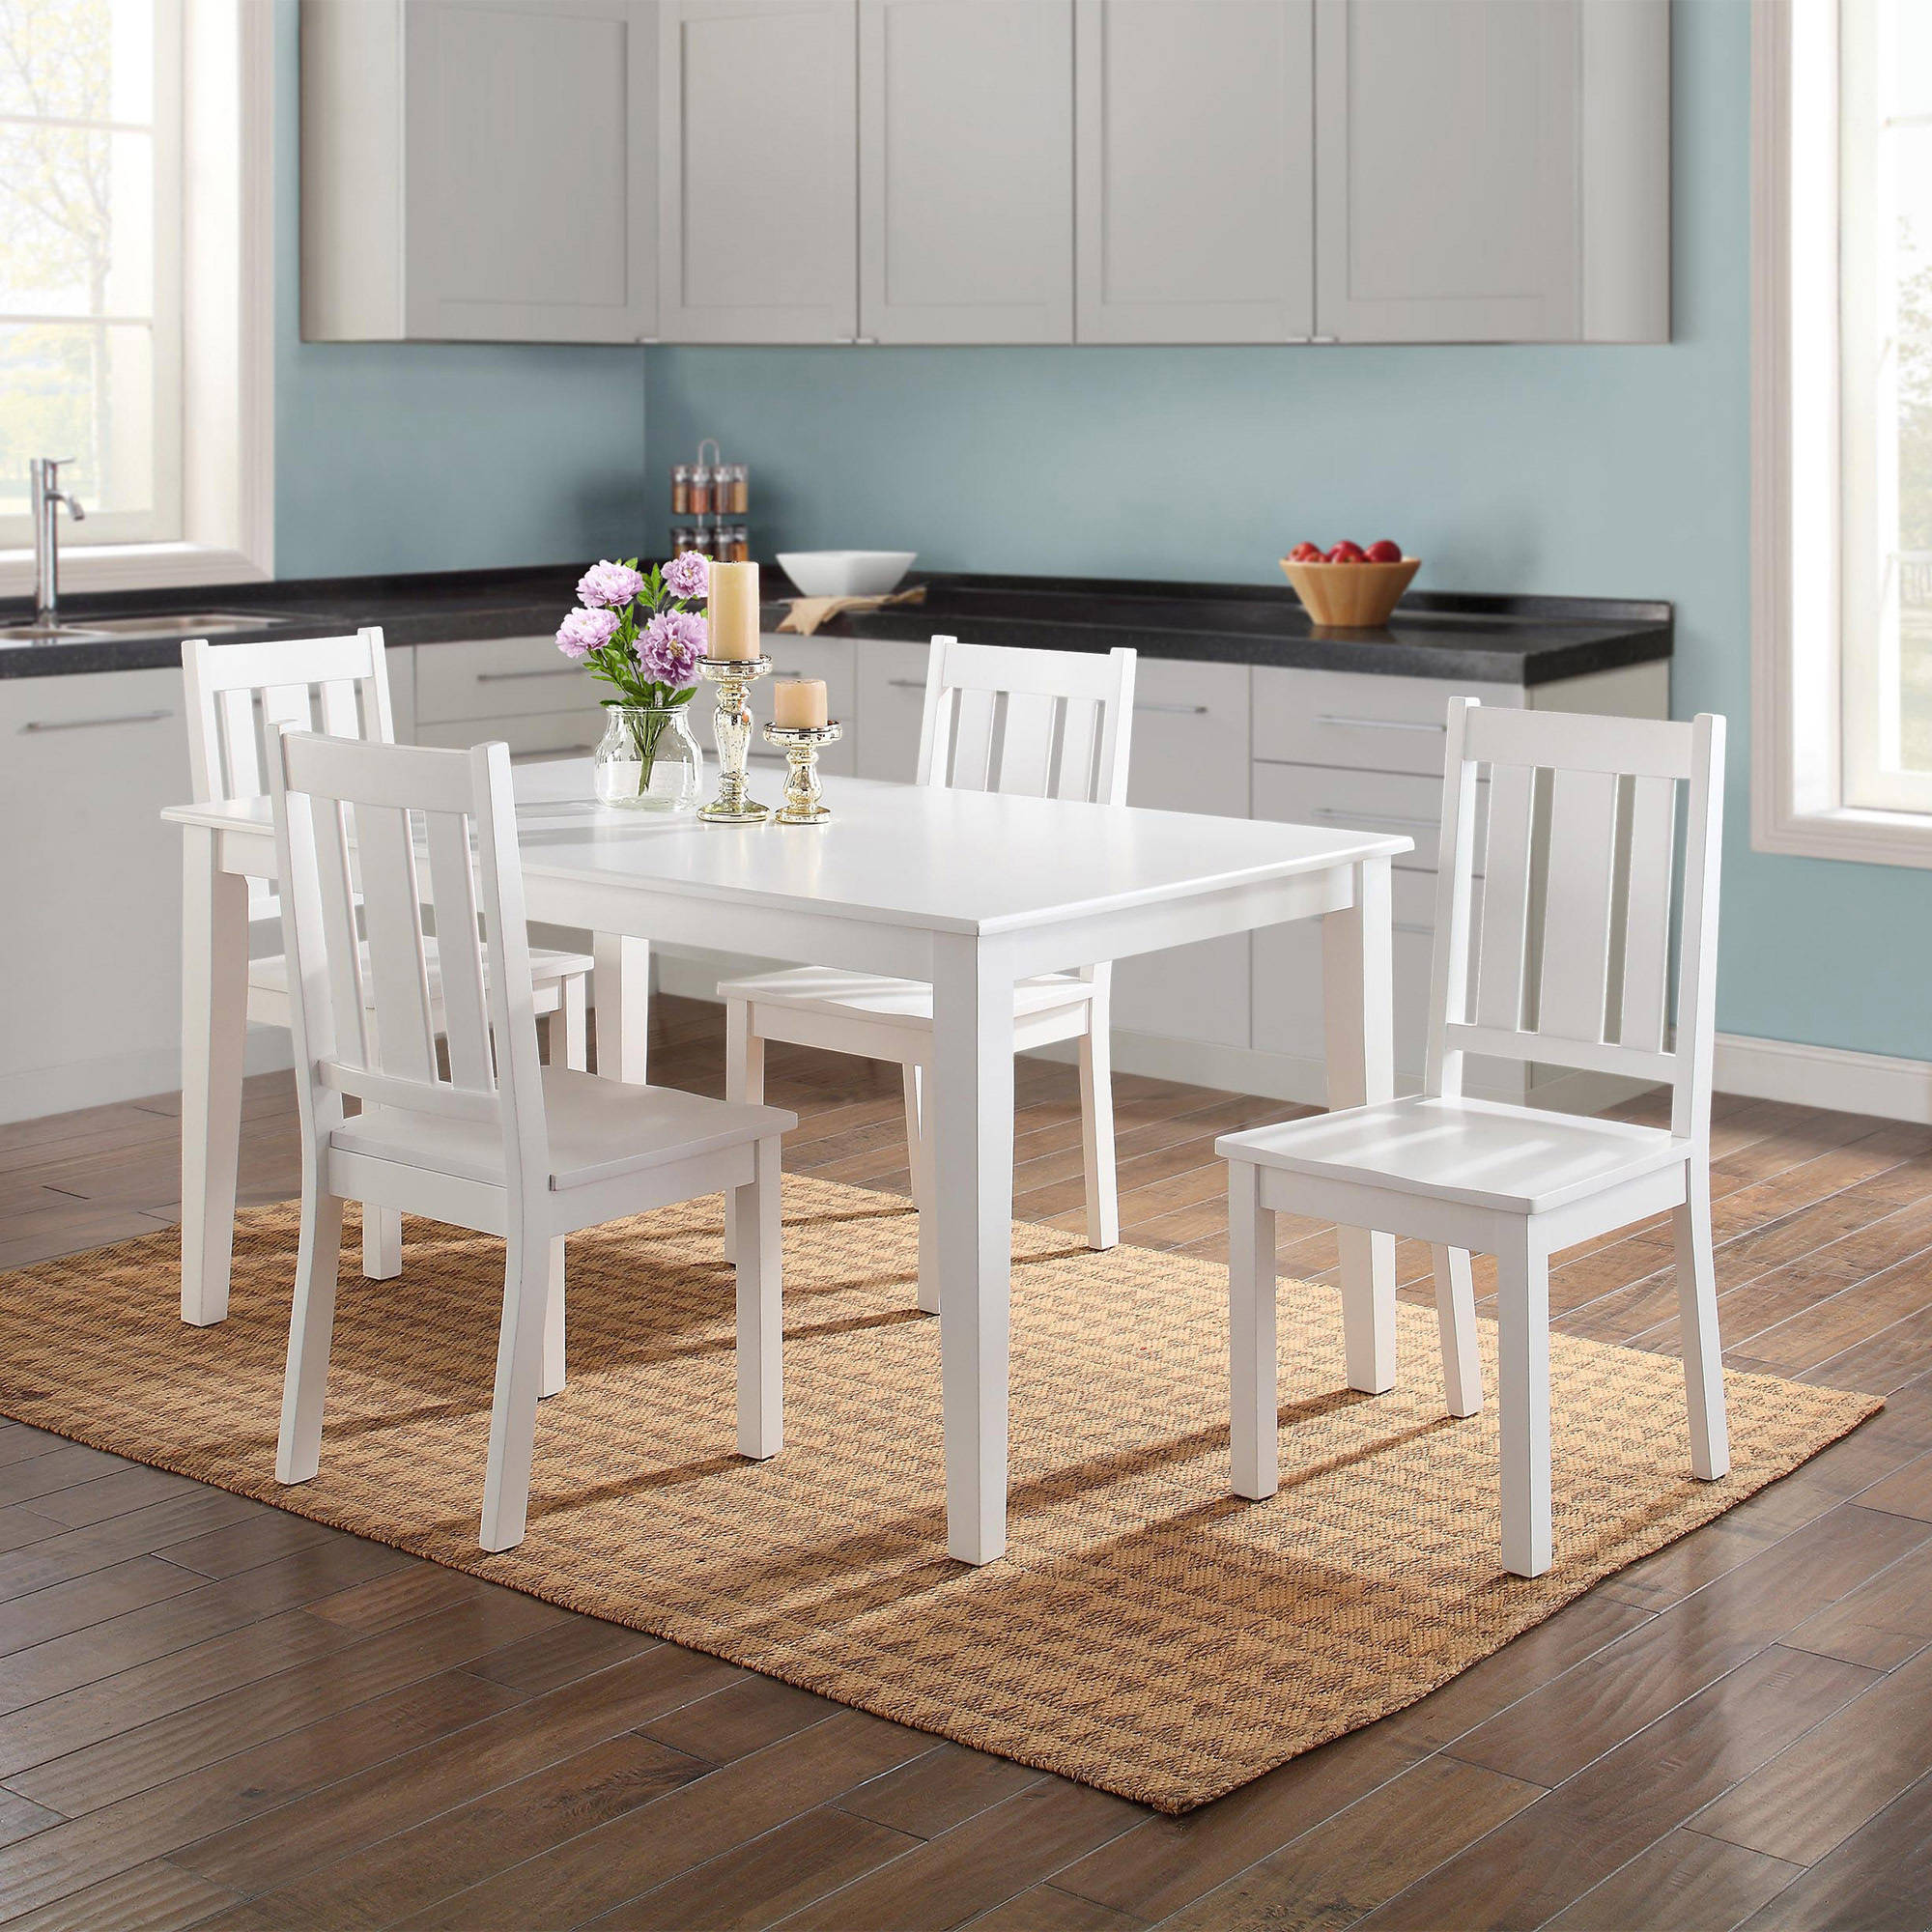 Better Homes and Gardens Bankston 5-Piece Dining Set, White